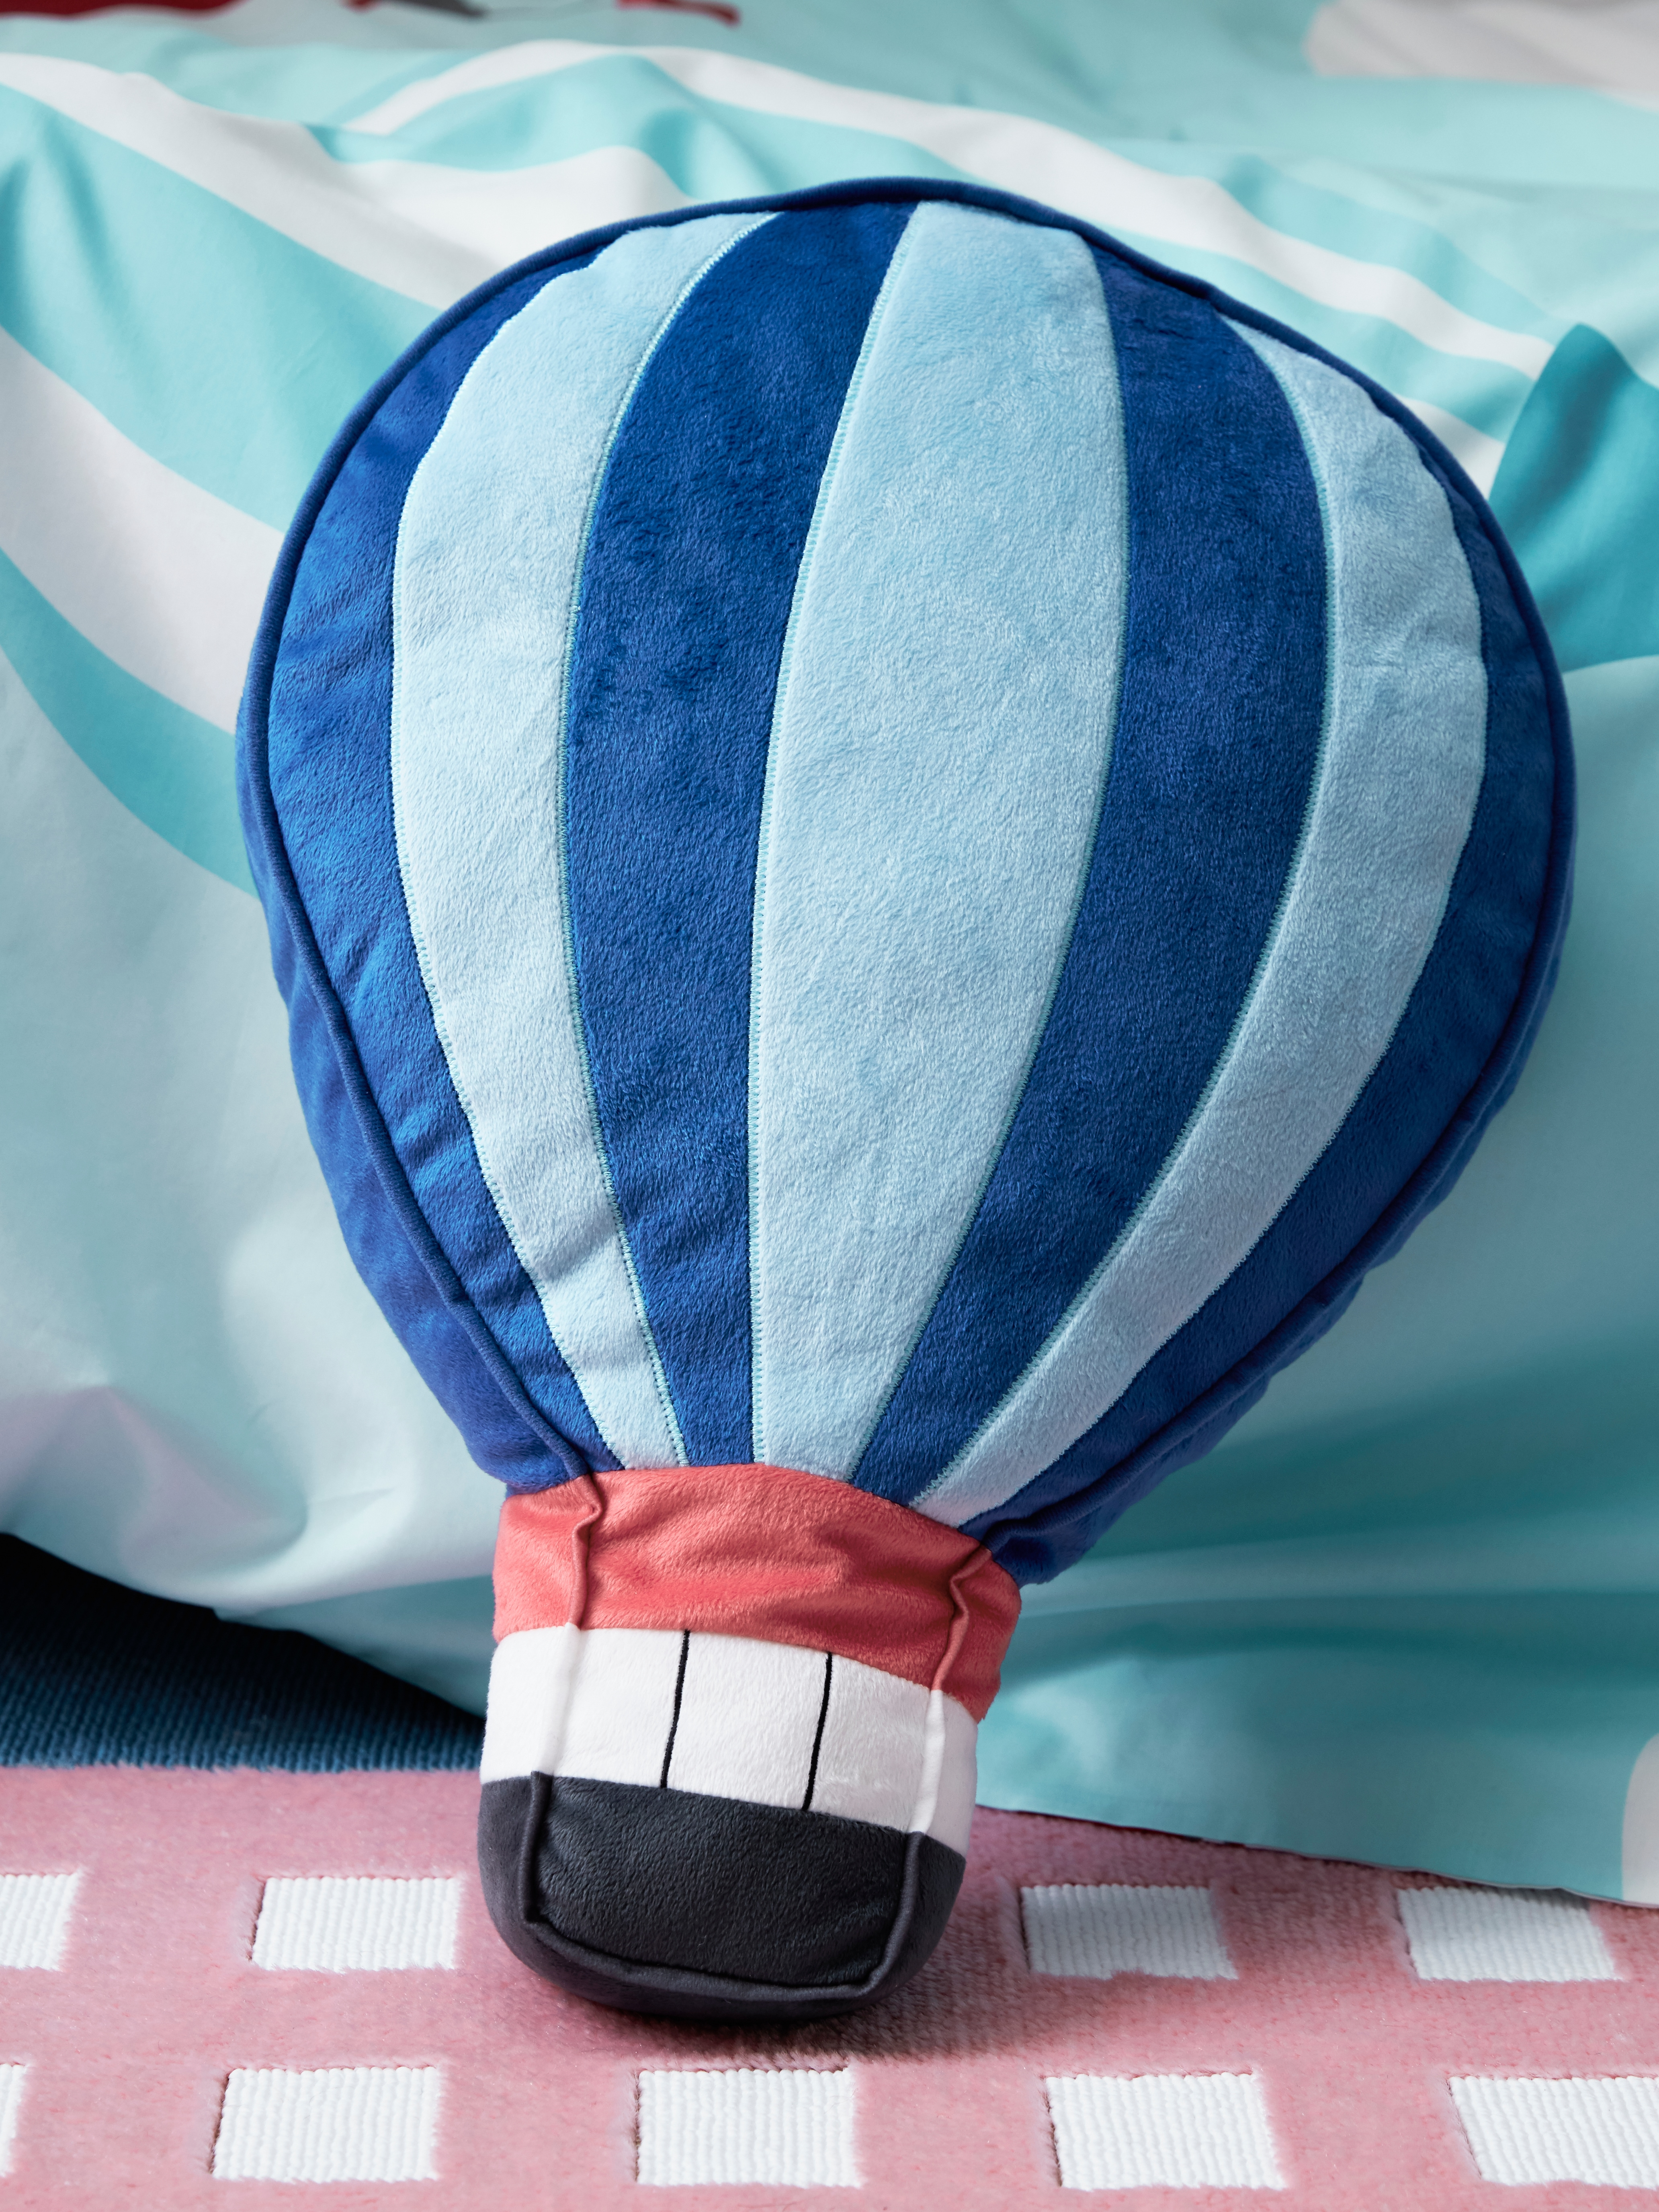 Close-up of a soft hot-air balloon UPPTÅG pillow resting on a pink rug with white squares and striped teal-coloured bedding.